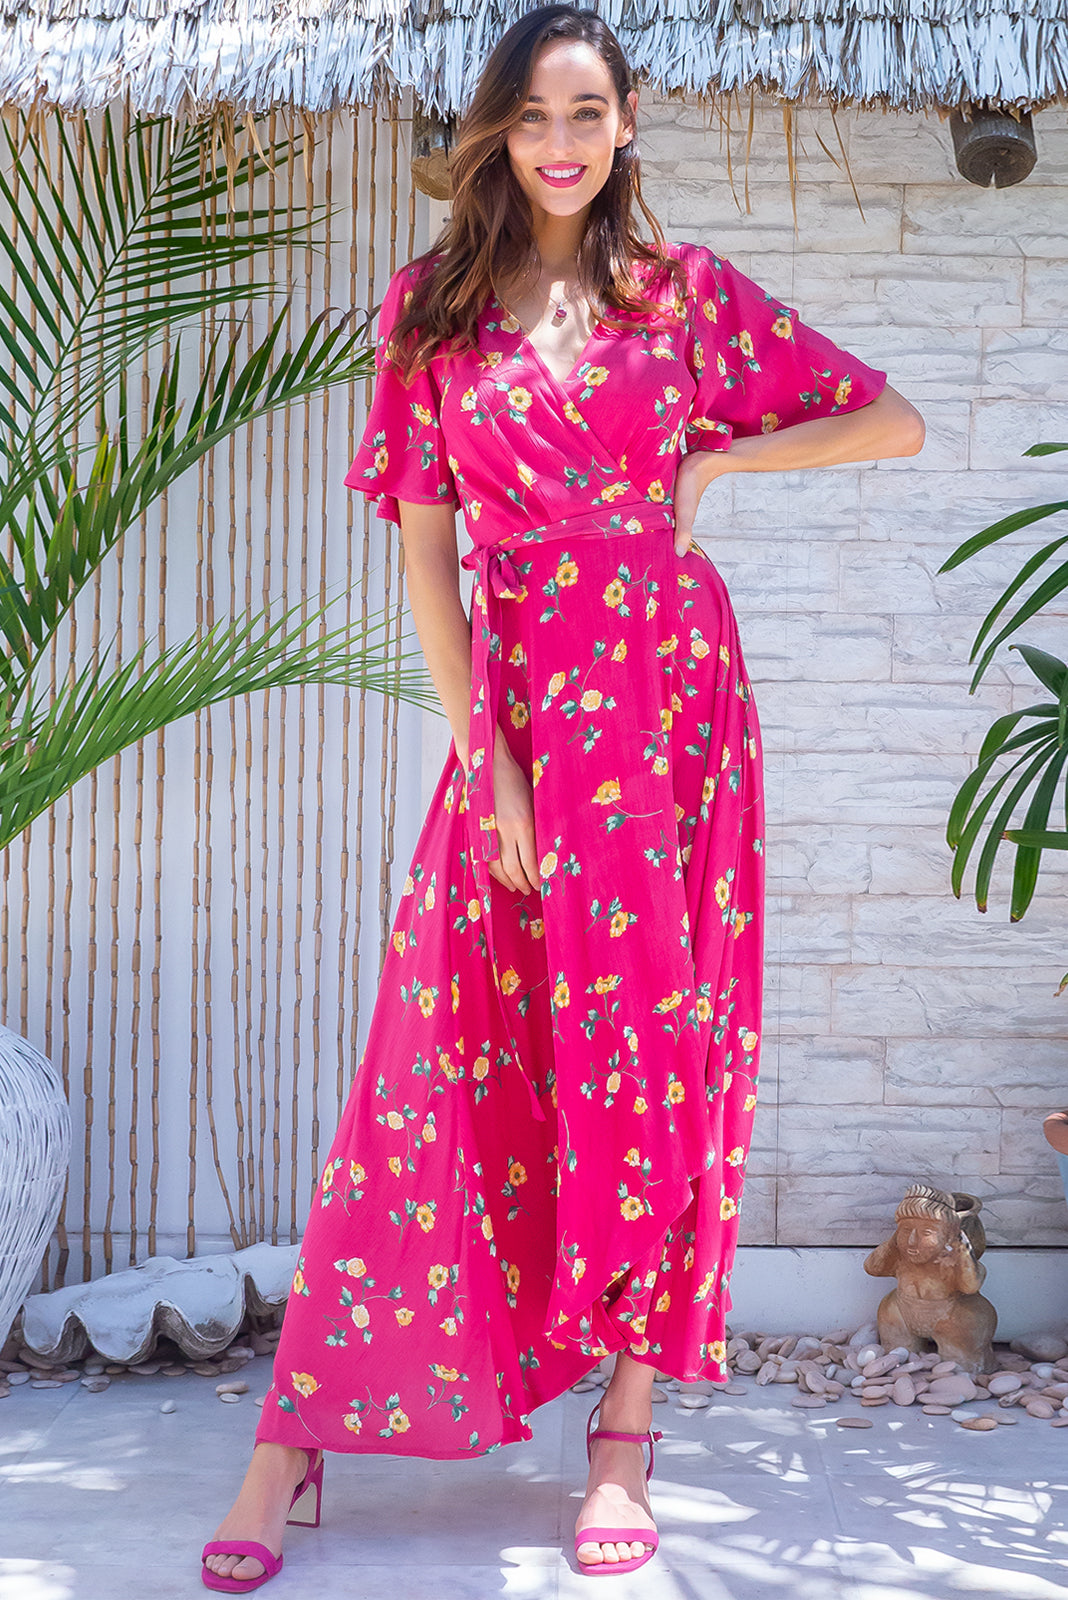 The Cinnamon Cerise Scatter Maxi Wrap Dress features adjustable wrap tie waist, elasticated back waist band, flutter sleeves, scoop hem shorter at the front and 100% crinkle texture rayon in cerise pink base with amber toned floral print.